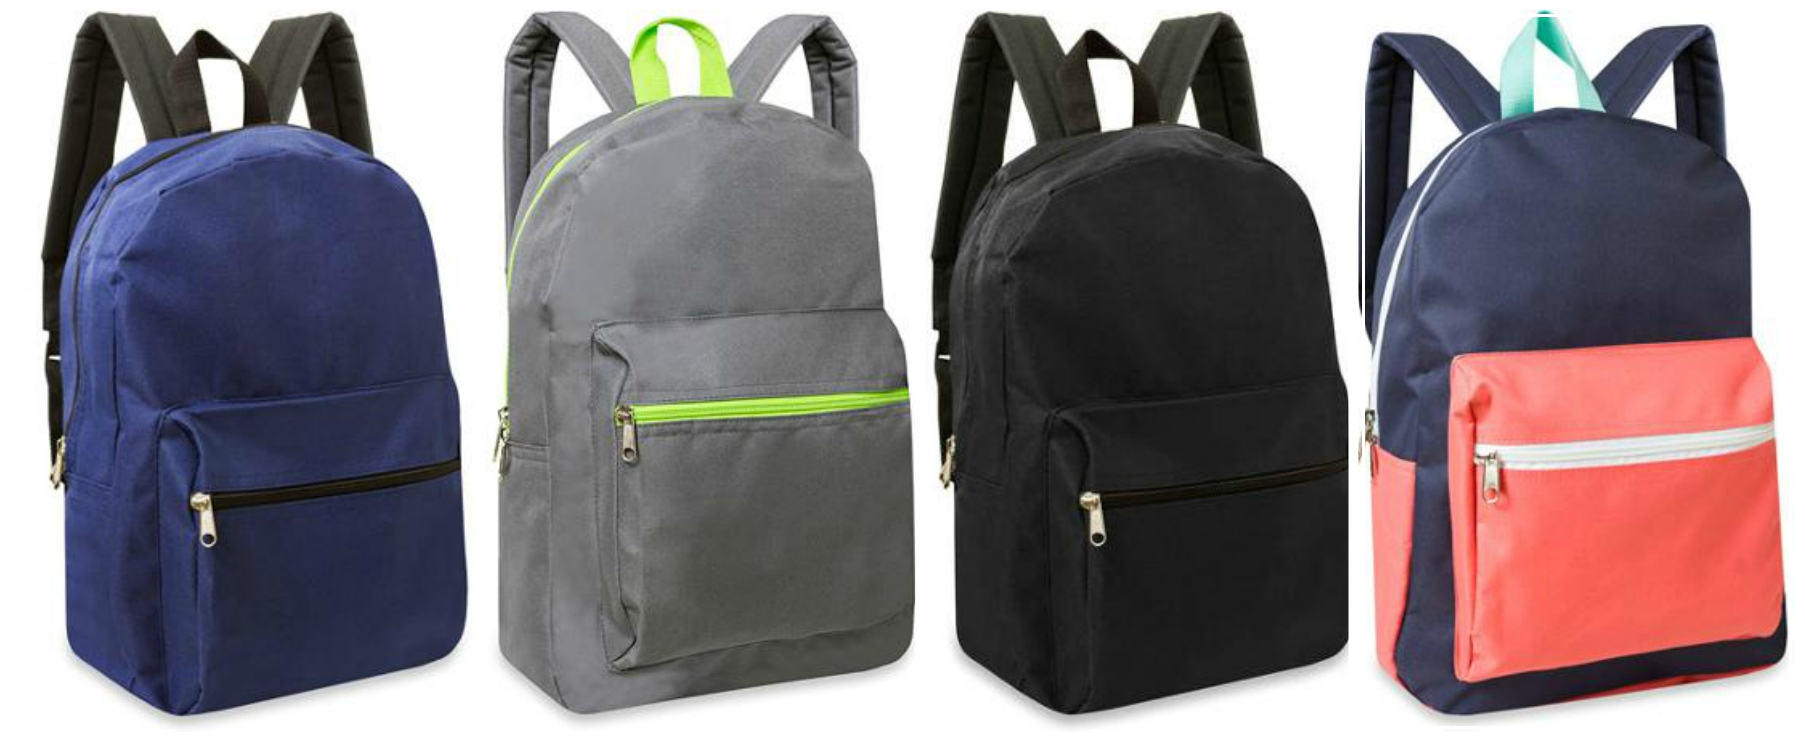 Stores That Sell Jansport Backpacks q1MQ5W06